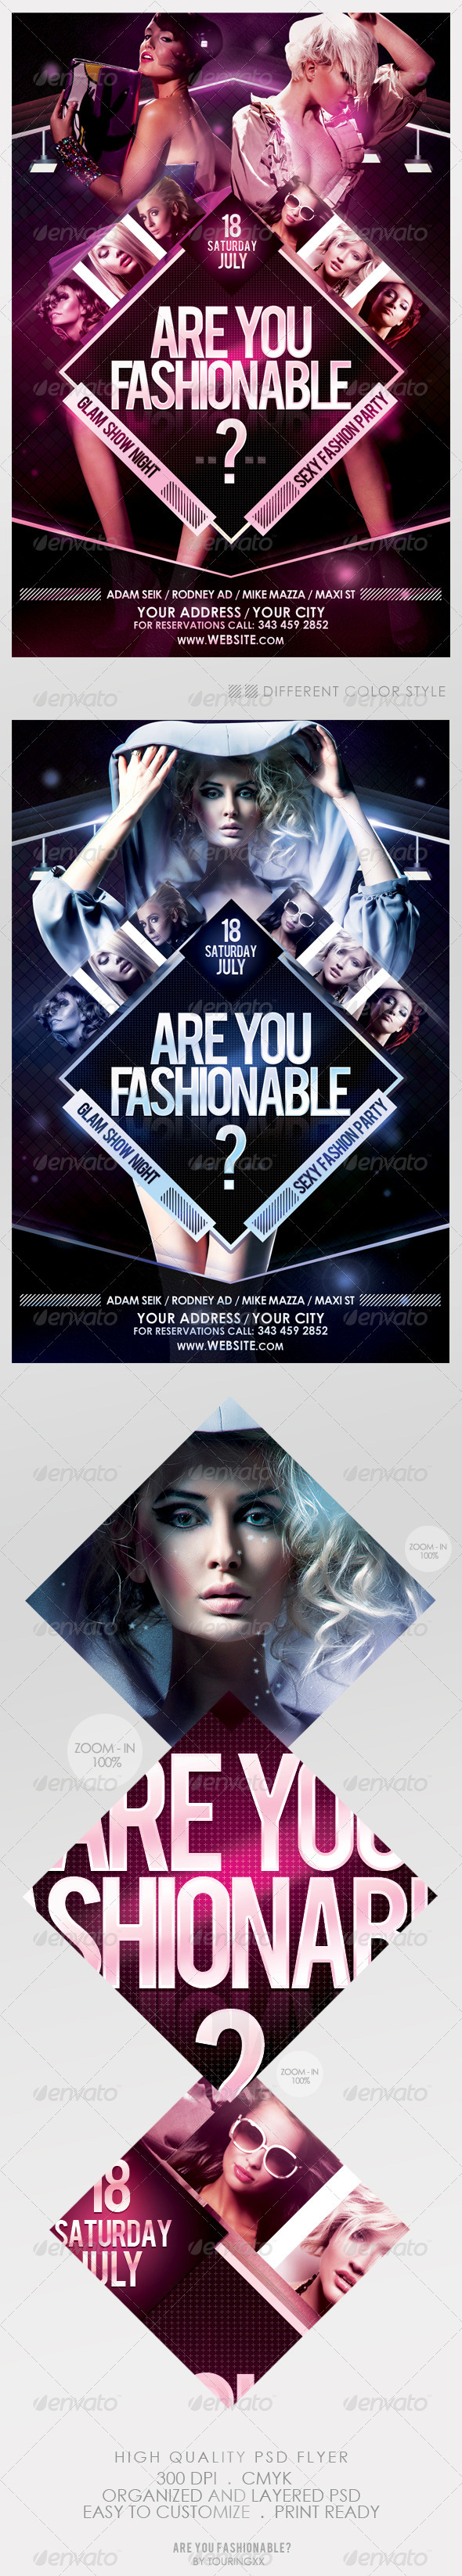 Are You Fashionable? Flyer Template - Flyers Print Templates